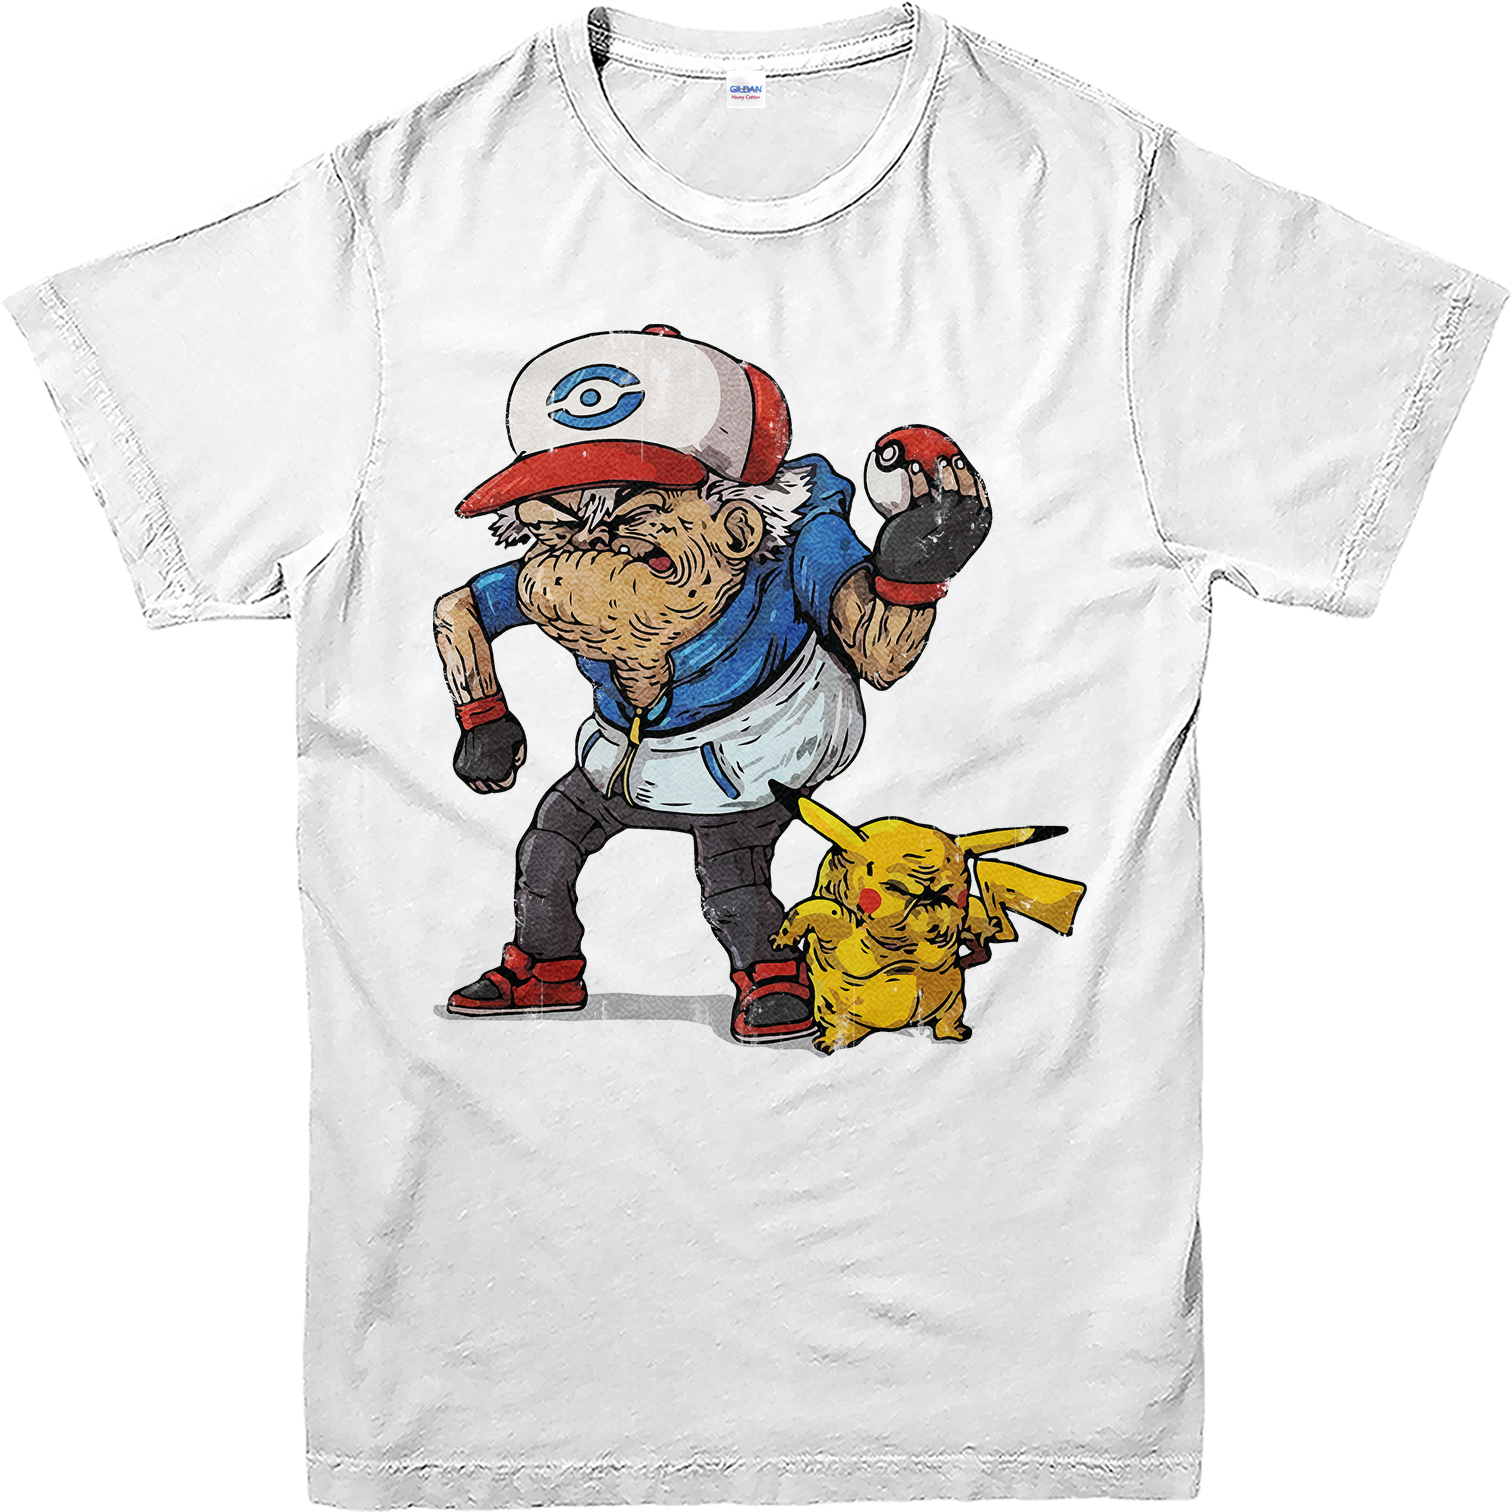 Pokemon Tee Shirts Nz | Toffee Art